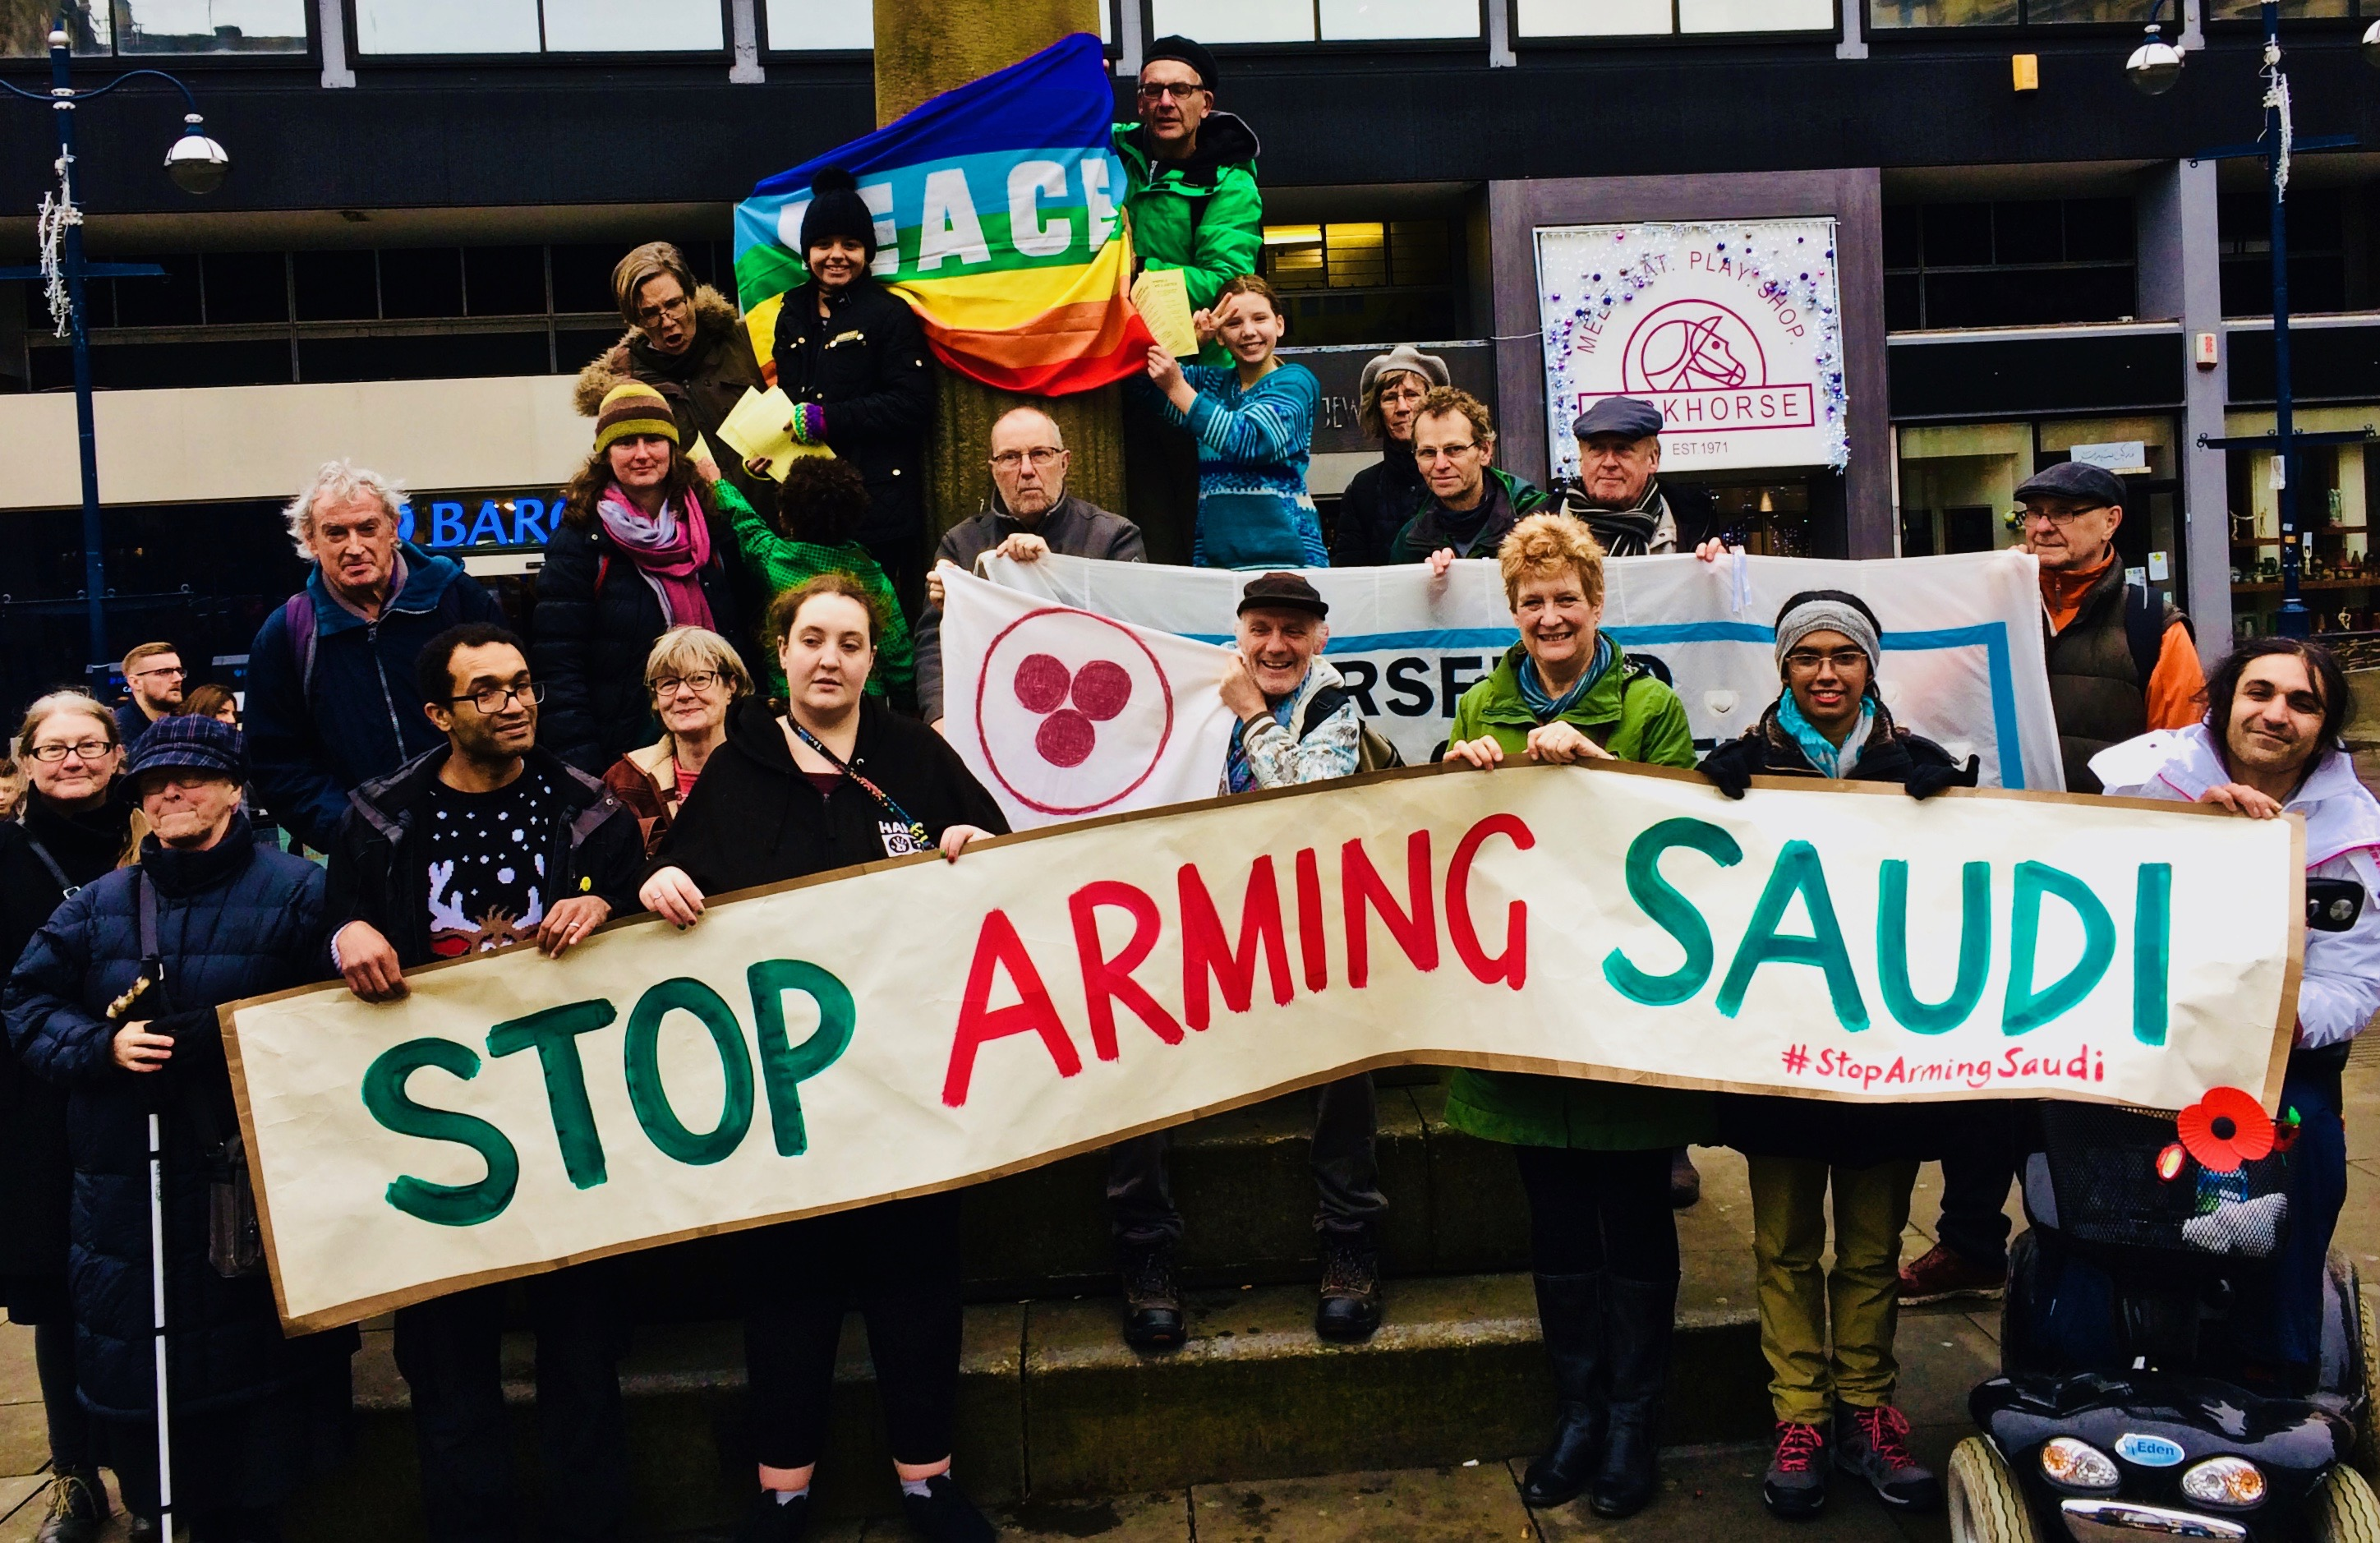 people demonstrating against arms sales to Saudi Arabia